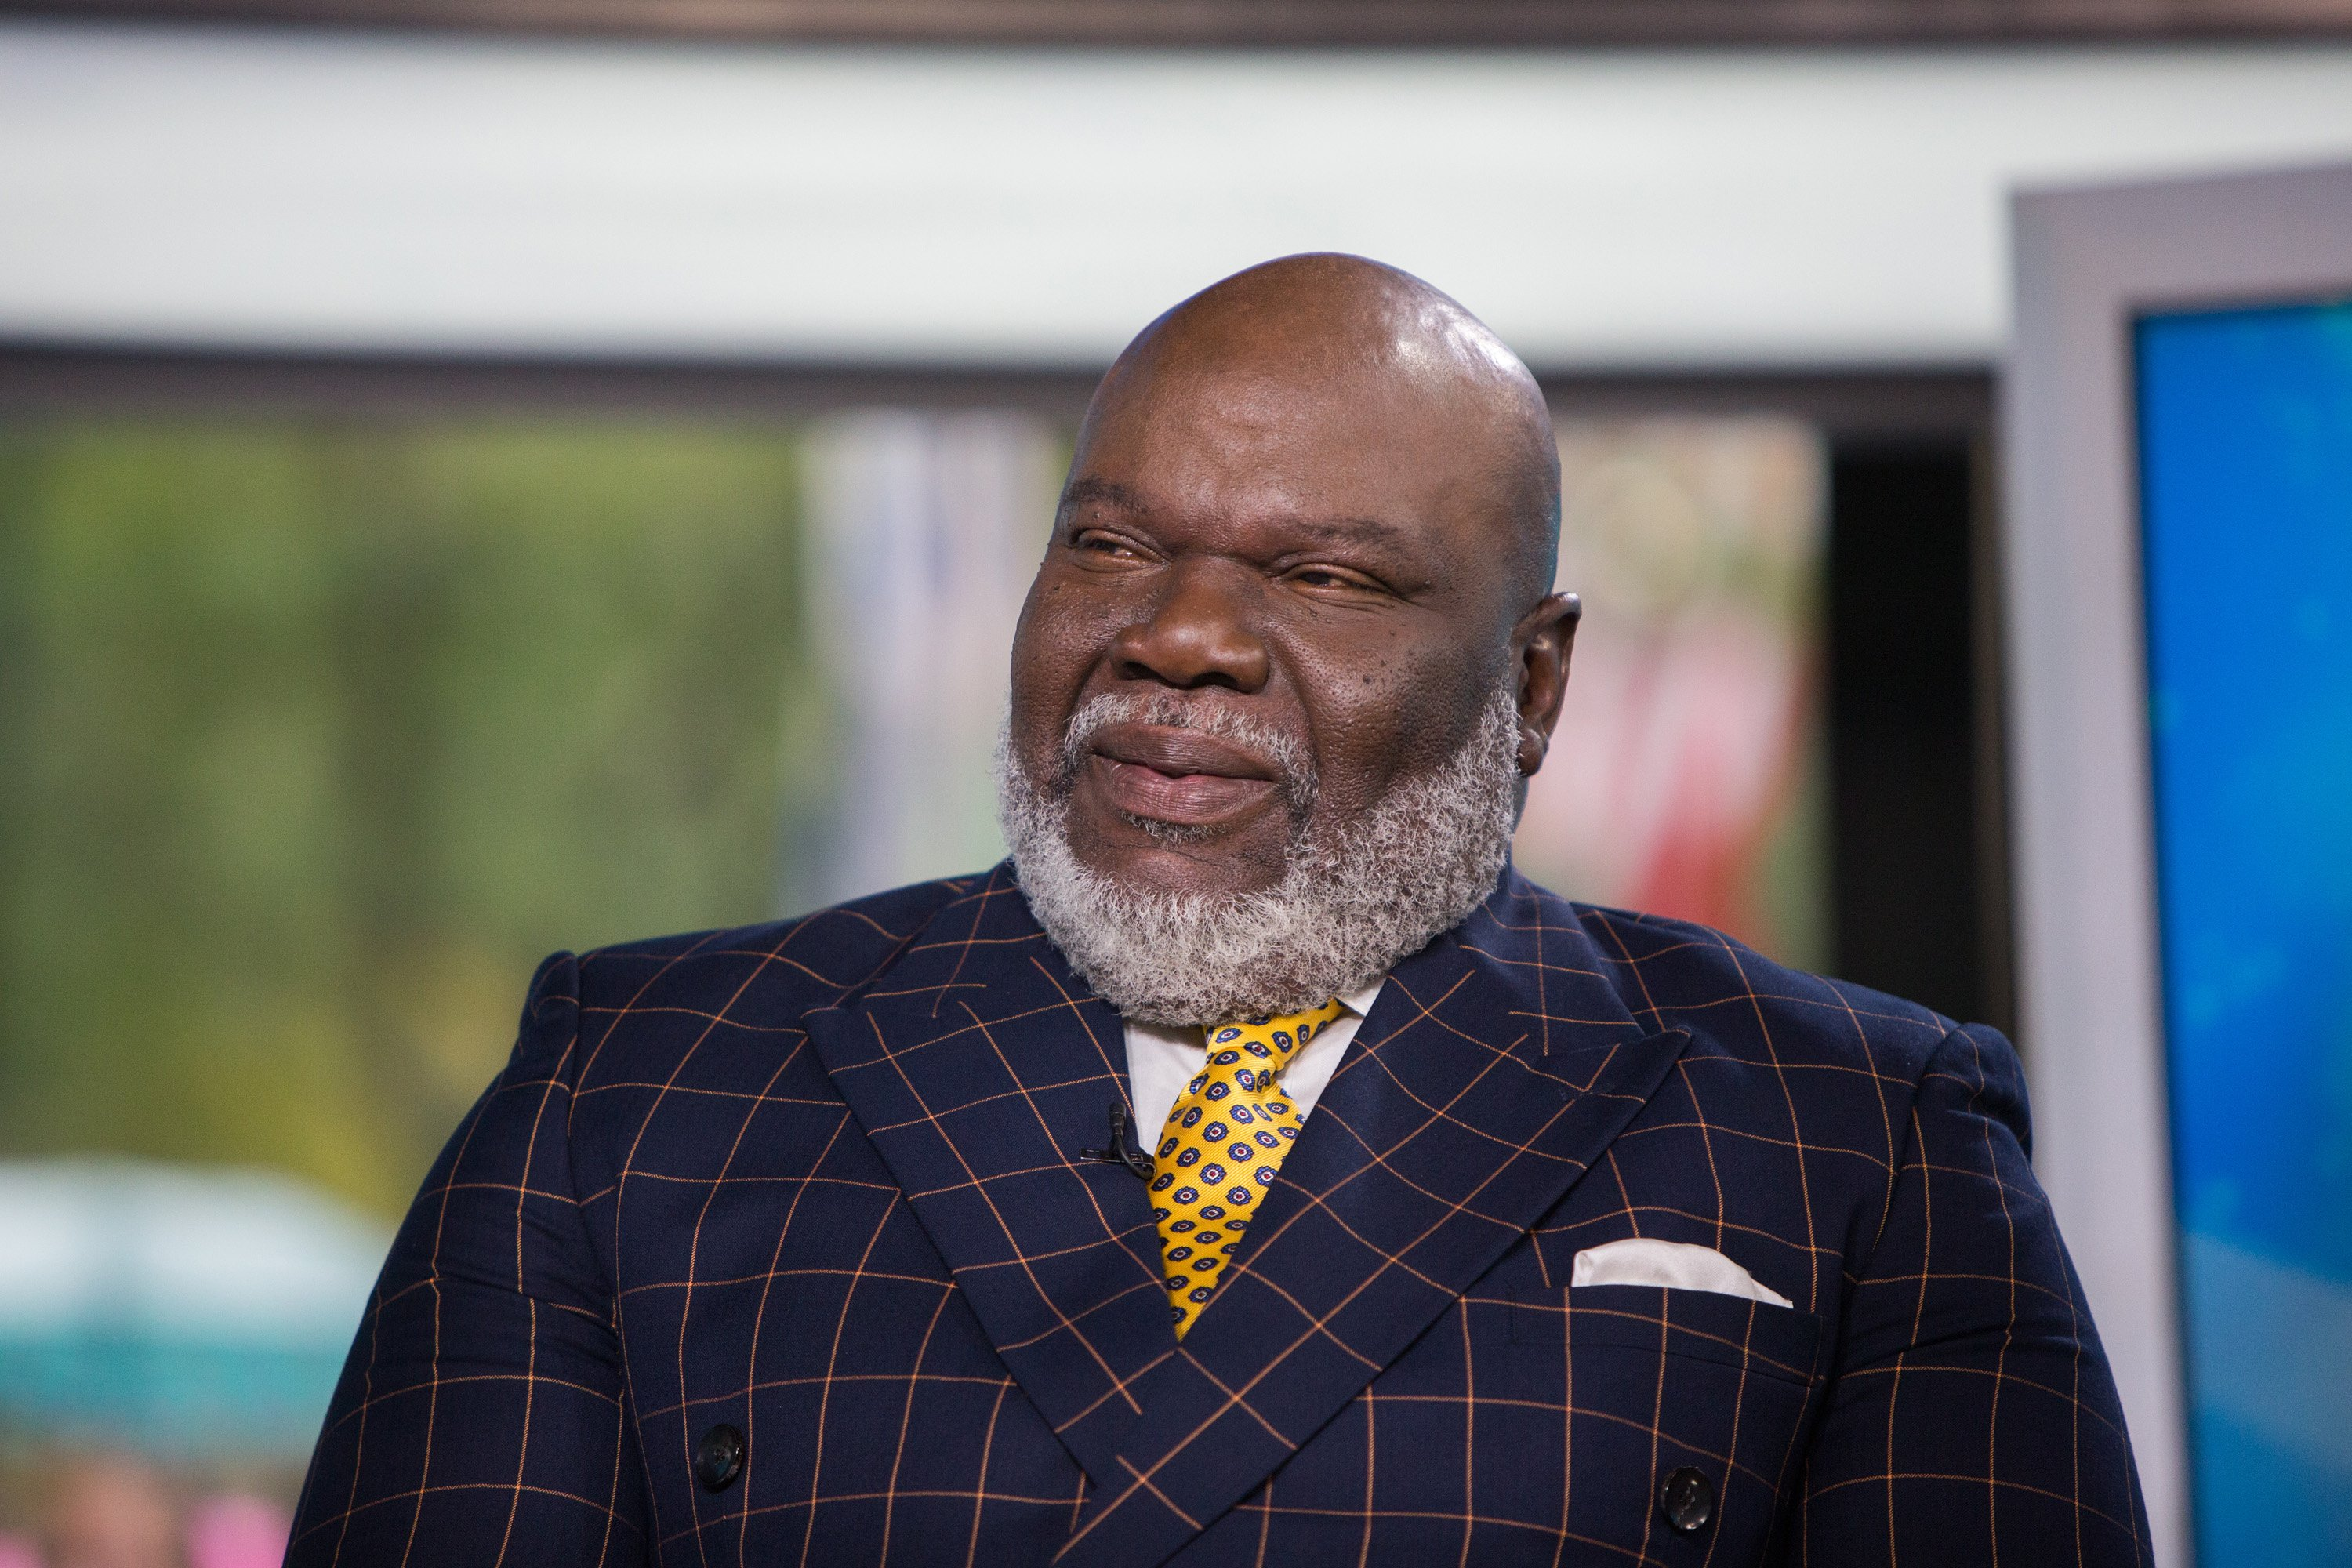 """Bishop T.D. Jakes on the set of """"Today"""" on Monday, October 9, 2017. 